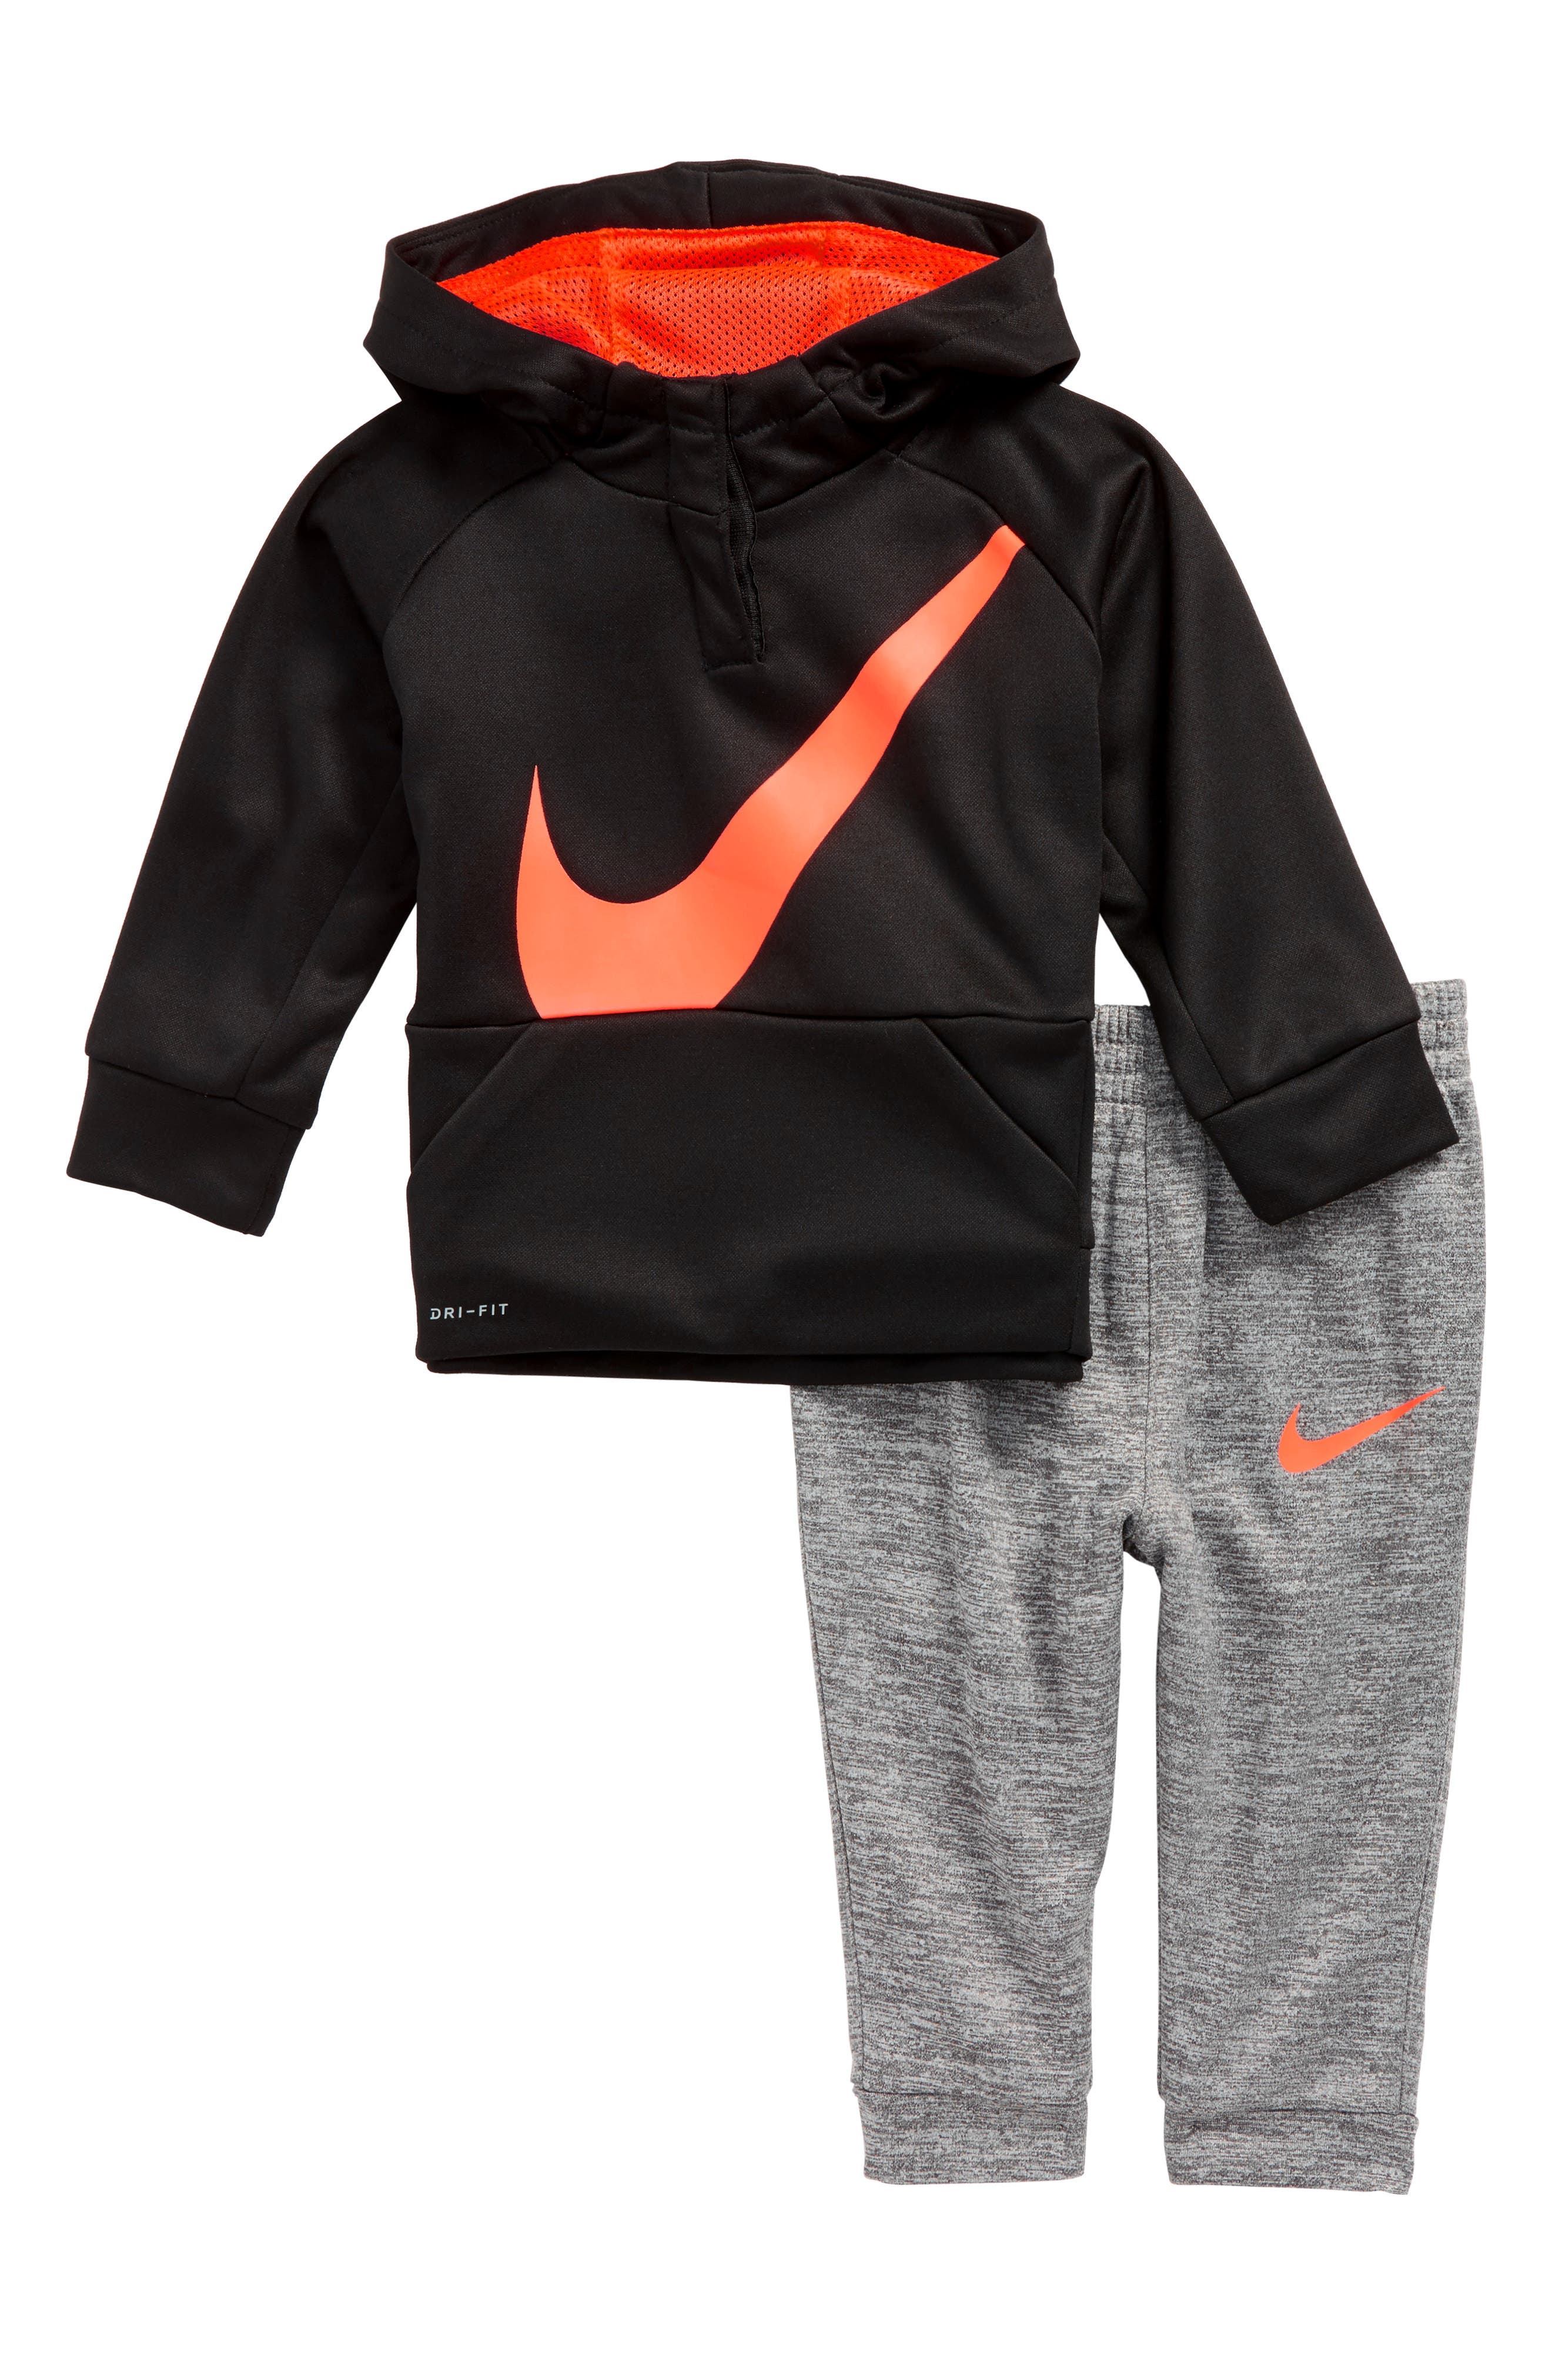 Main Image - Nike Swoosh Therma-FIT Oversize Hoodie & Pants Set (Baby Boys)